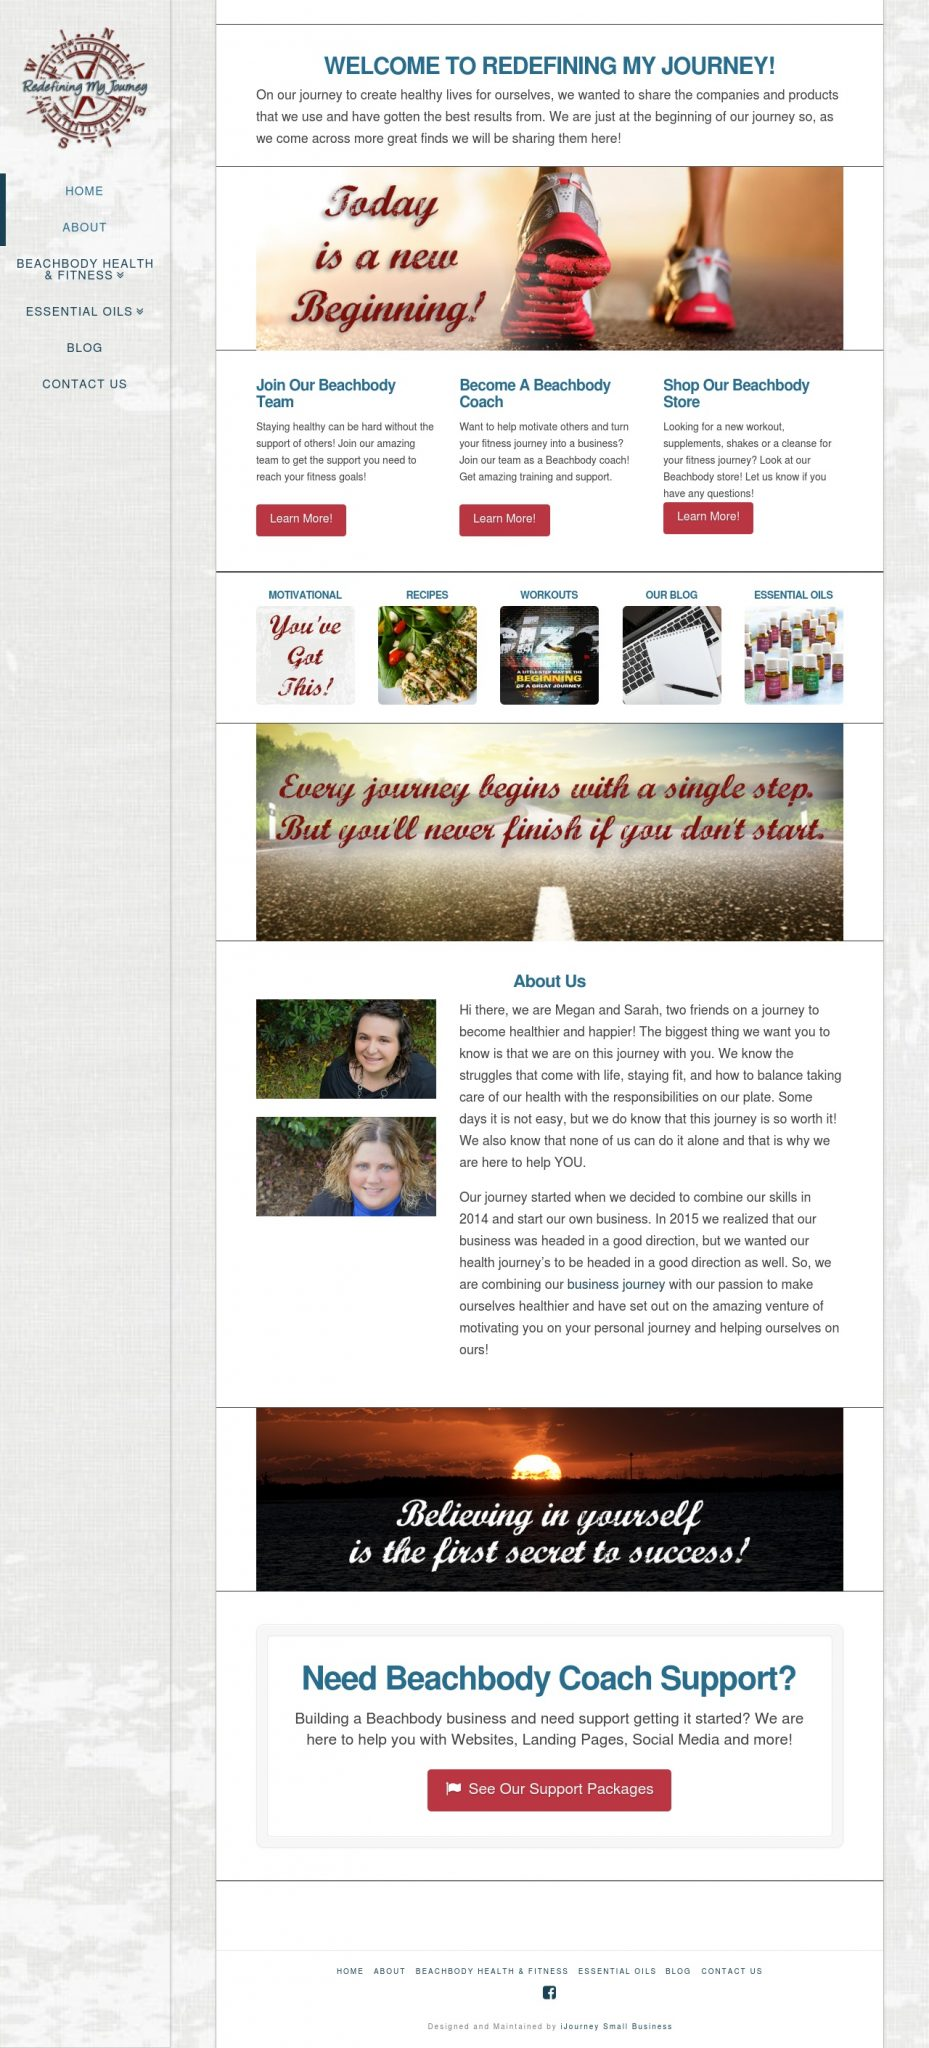 Redefining My Journey - Website Design